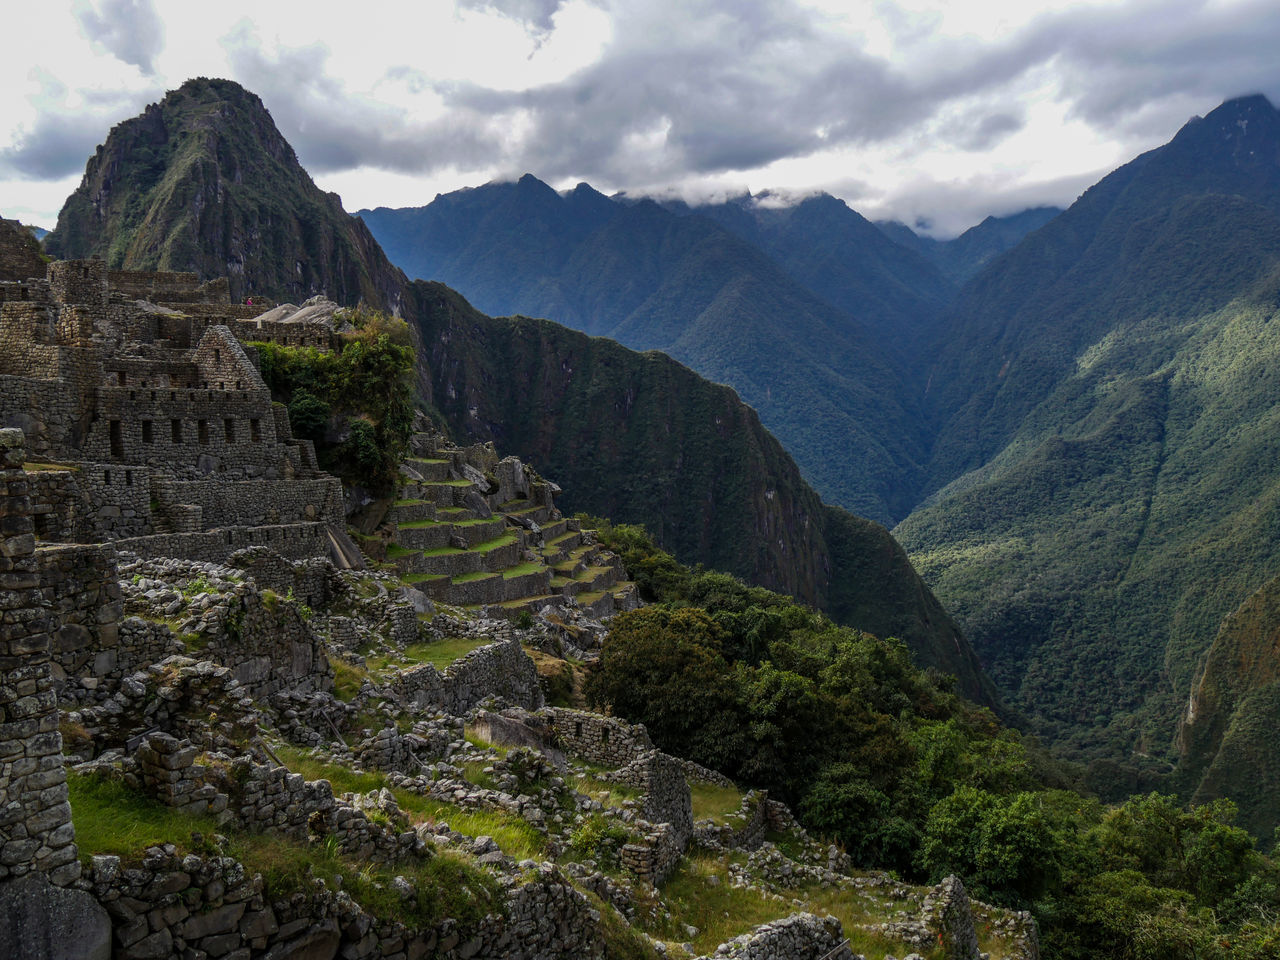 This is the view of Machu Picchu when you arrive on the site Landscape Traveling Beauty In Nature Nature_collection Natural Landmark EyeEm Gallery Nature Naturelovers Travel Eye4photography  EyeEm Nature Lover Outdoors Landscape_Collection Cityscapes Cityscape Eyeem Perú Peru Mountain Range Landscapes Scenics Travel Destinations Mountain Machu Picchu Clouds And Sky Adapted To The City